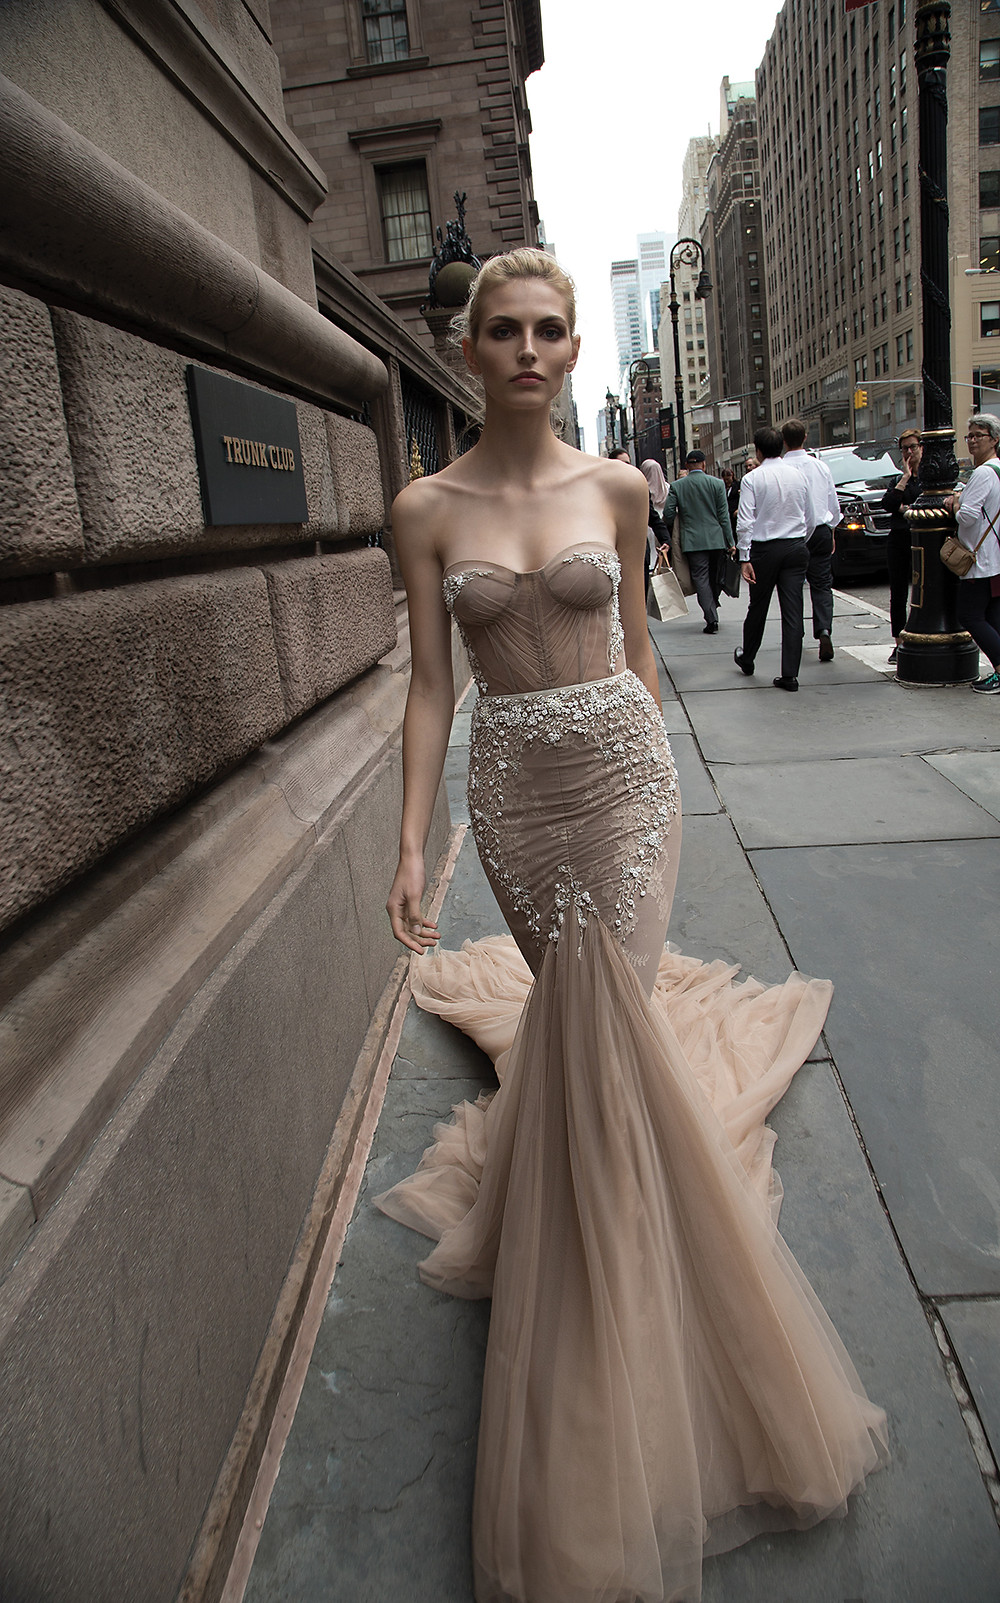 An Inbal Dror dark tan mermaid wedding dress, with sweetheart neckline, tulle skirt and beading